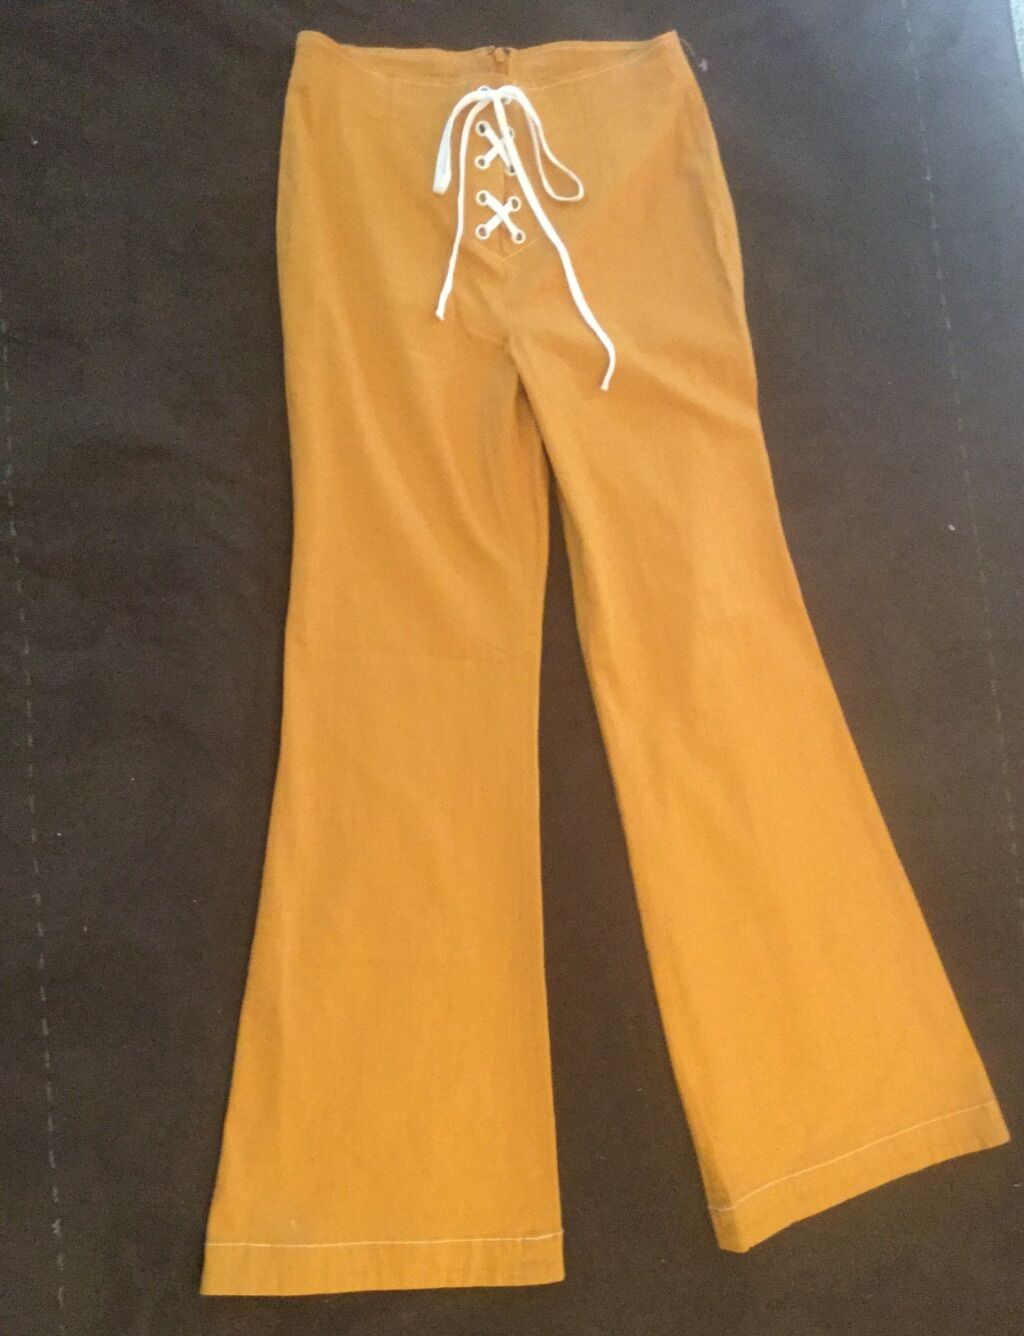 FREE PEOPLE, NEW Foxy Lace Up 70's Inspired Flare Leg Amber Yellow Pants Size 10